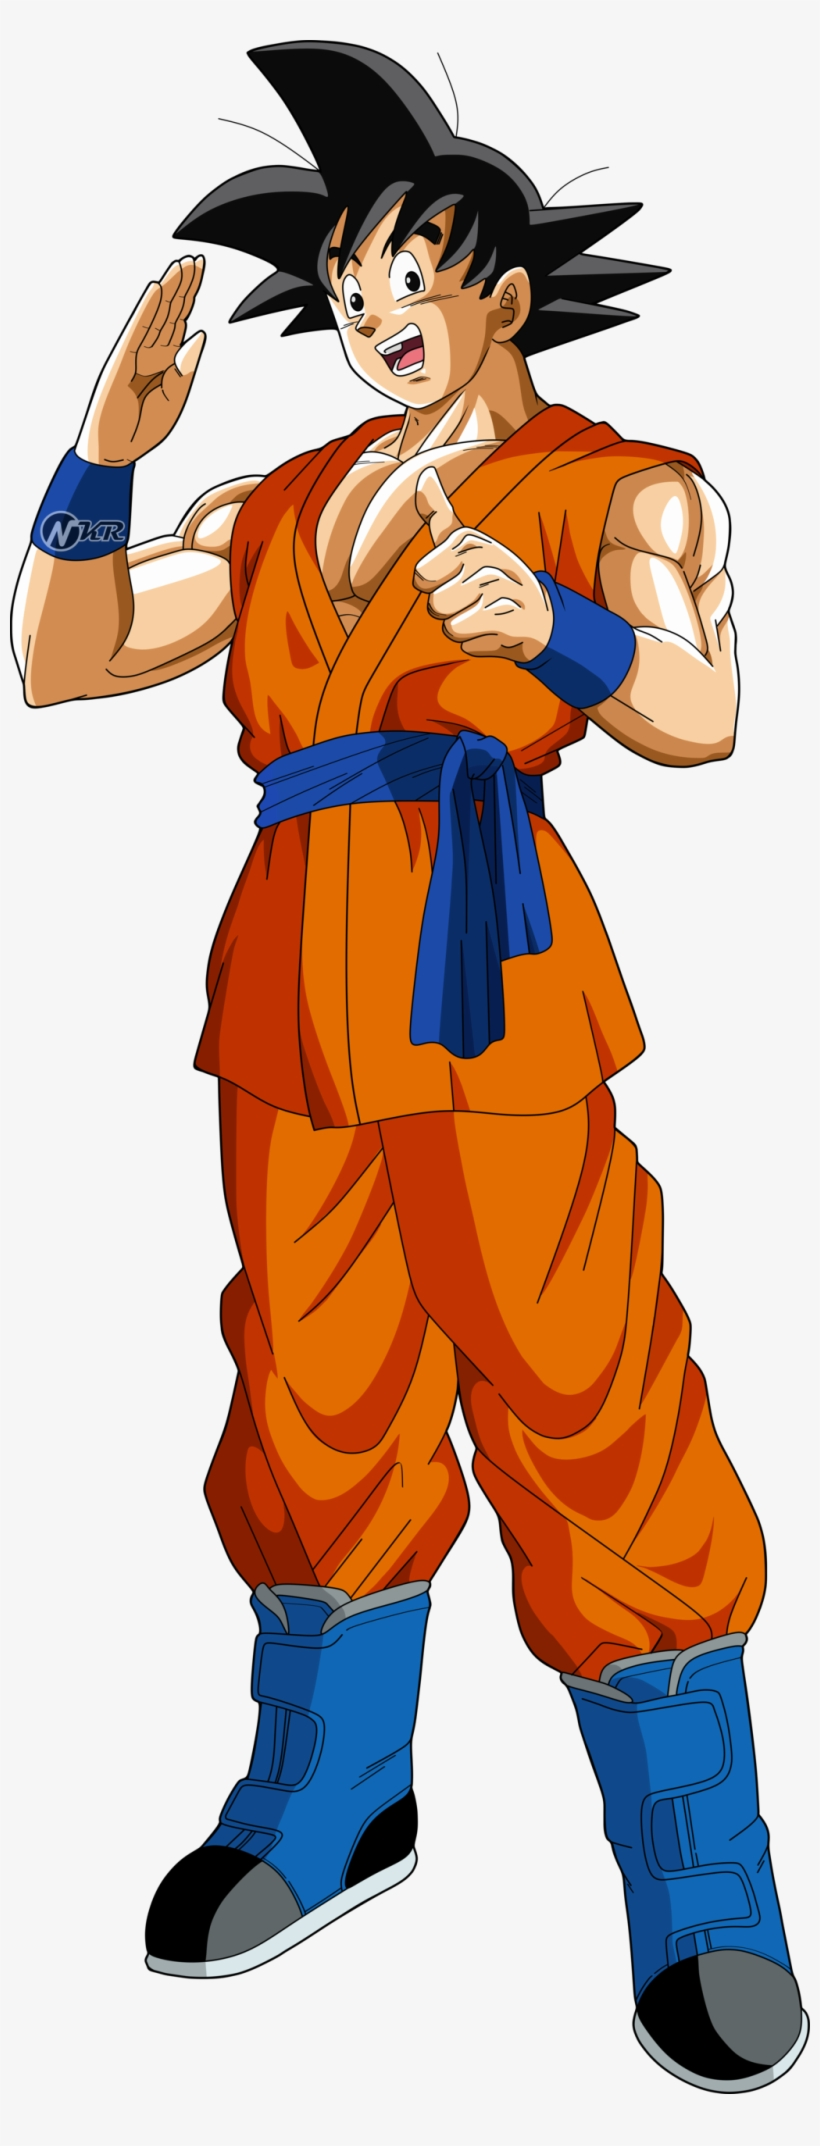 Dragon Ball Clipart Goku Normal - Goku Dragon Ball Super Png, transparent png #707539